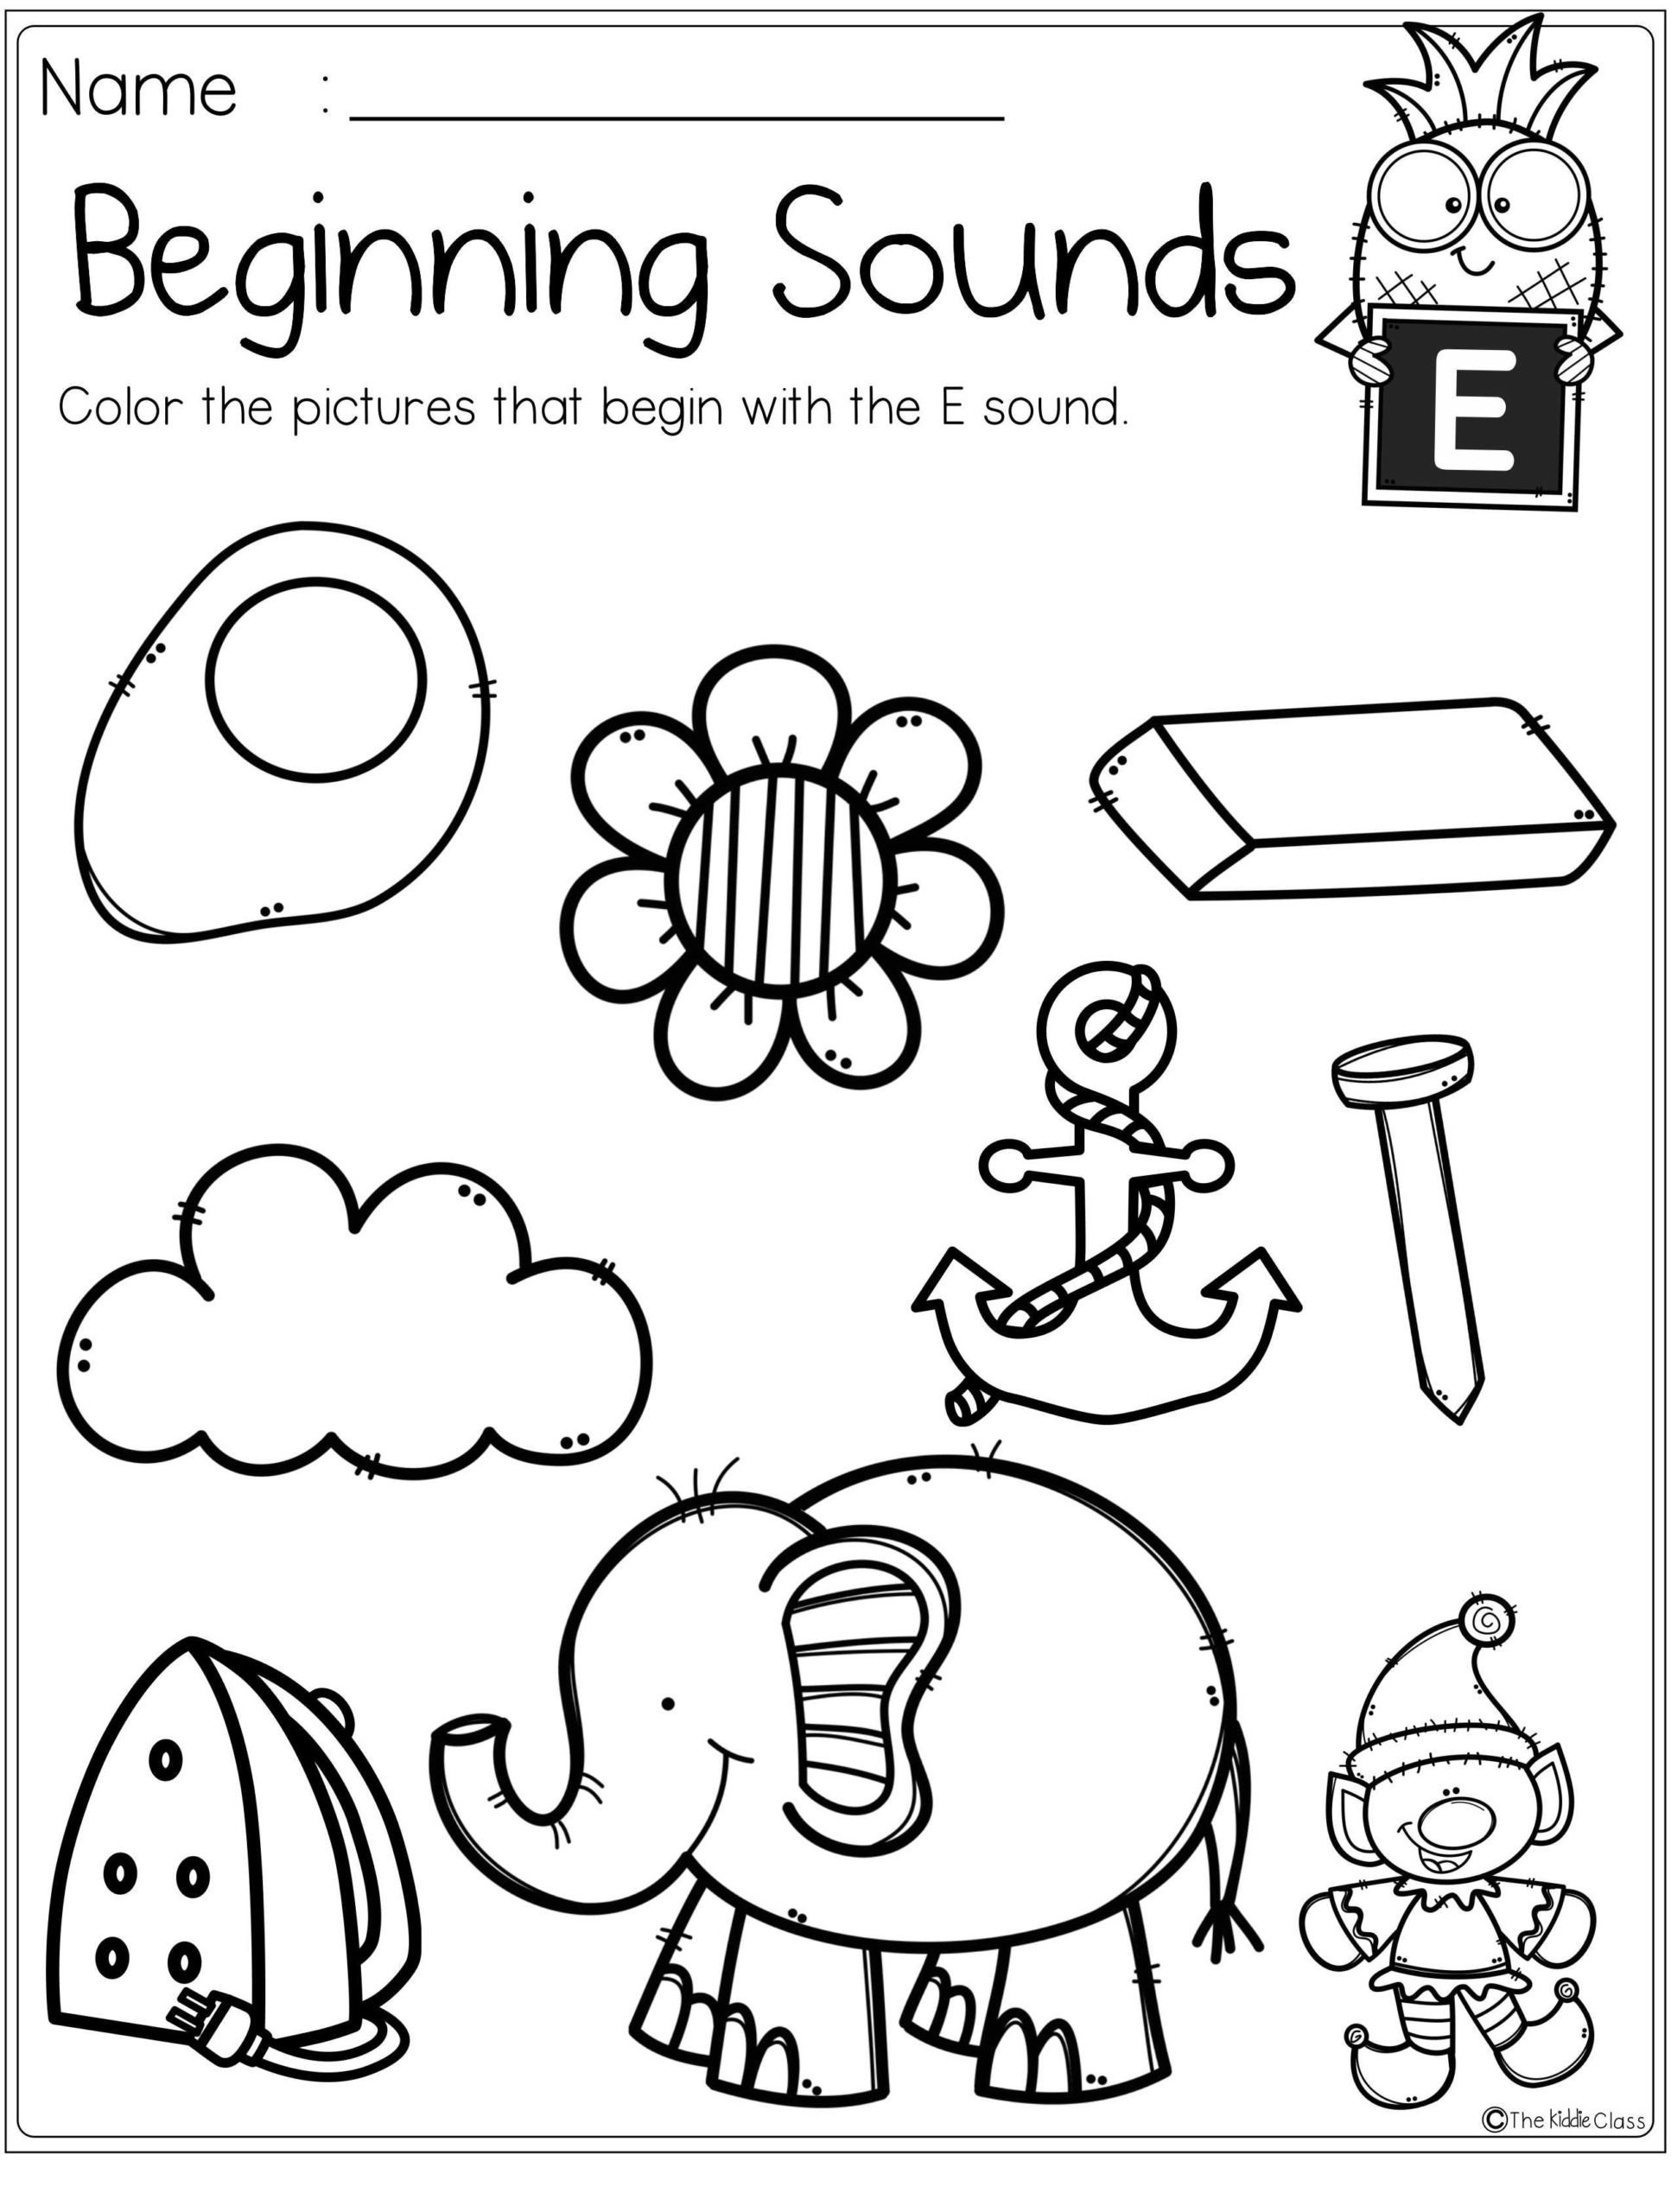 Kindergarten Phonics Worksheets Beginning sounds Division Questions Year 5 Phonics Reading Worksheets Free